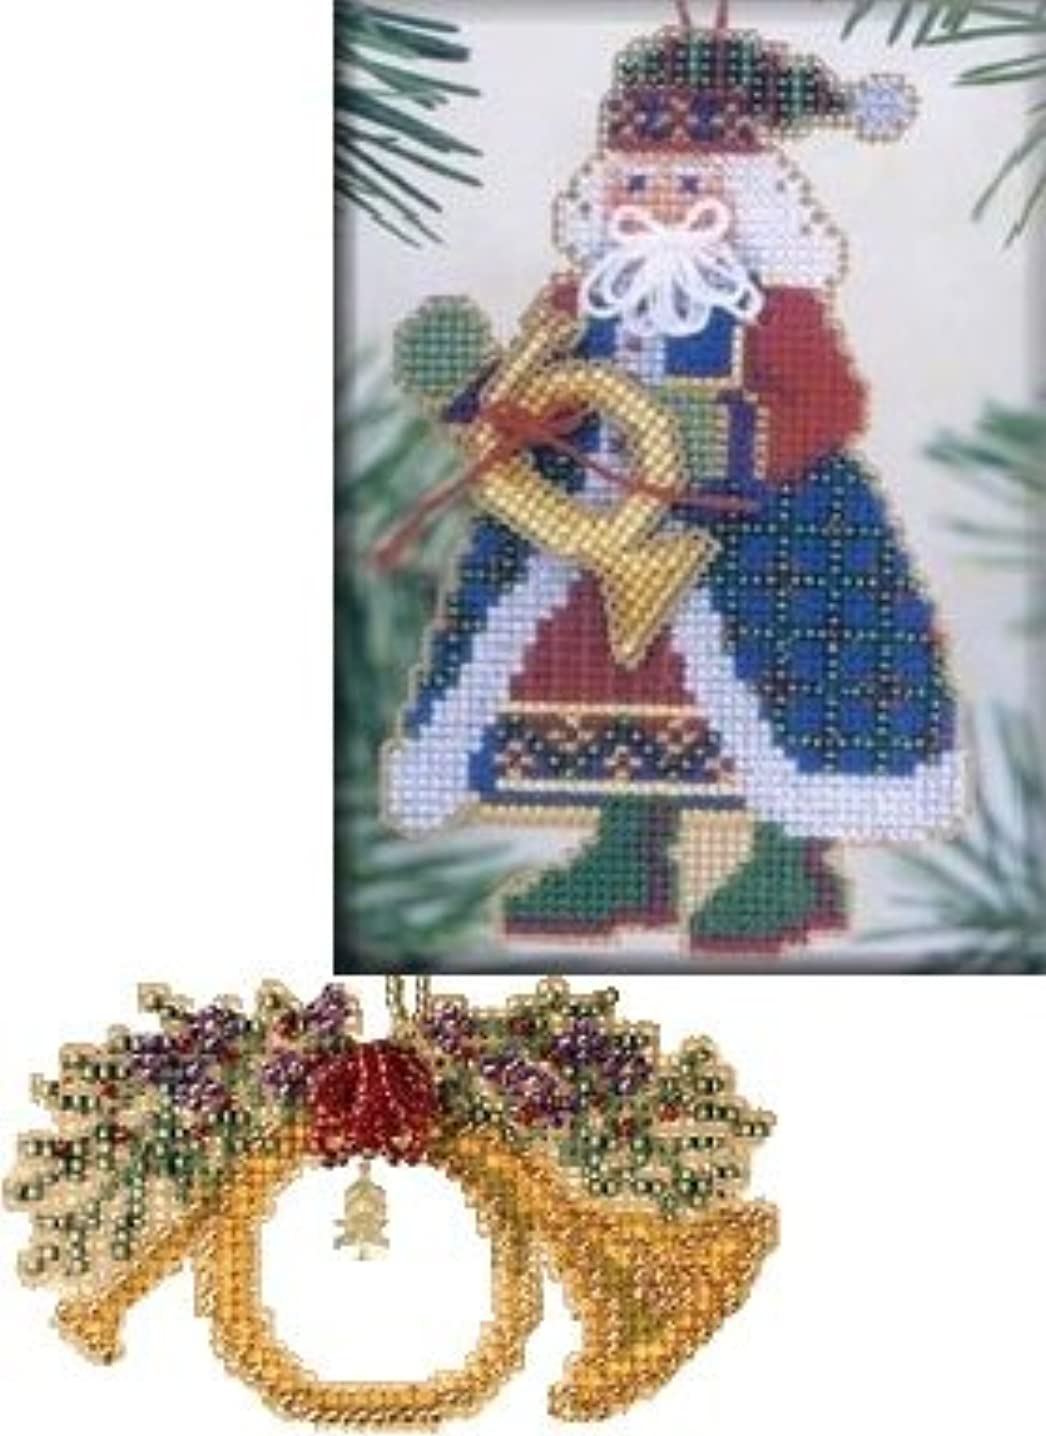 2 Item Bundle - Counted Glass Bead Ornament Kits : French Horn Santa Kit & French Horn Kit